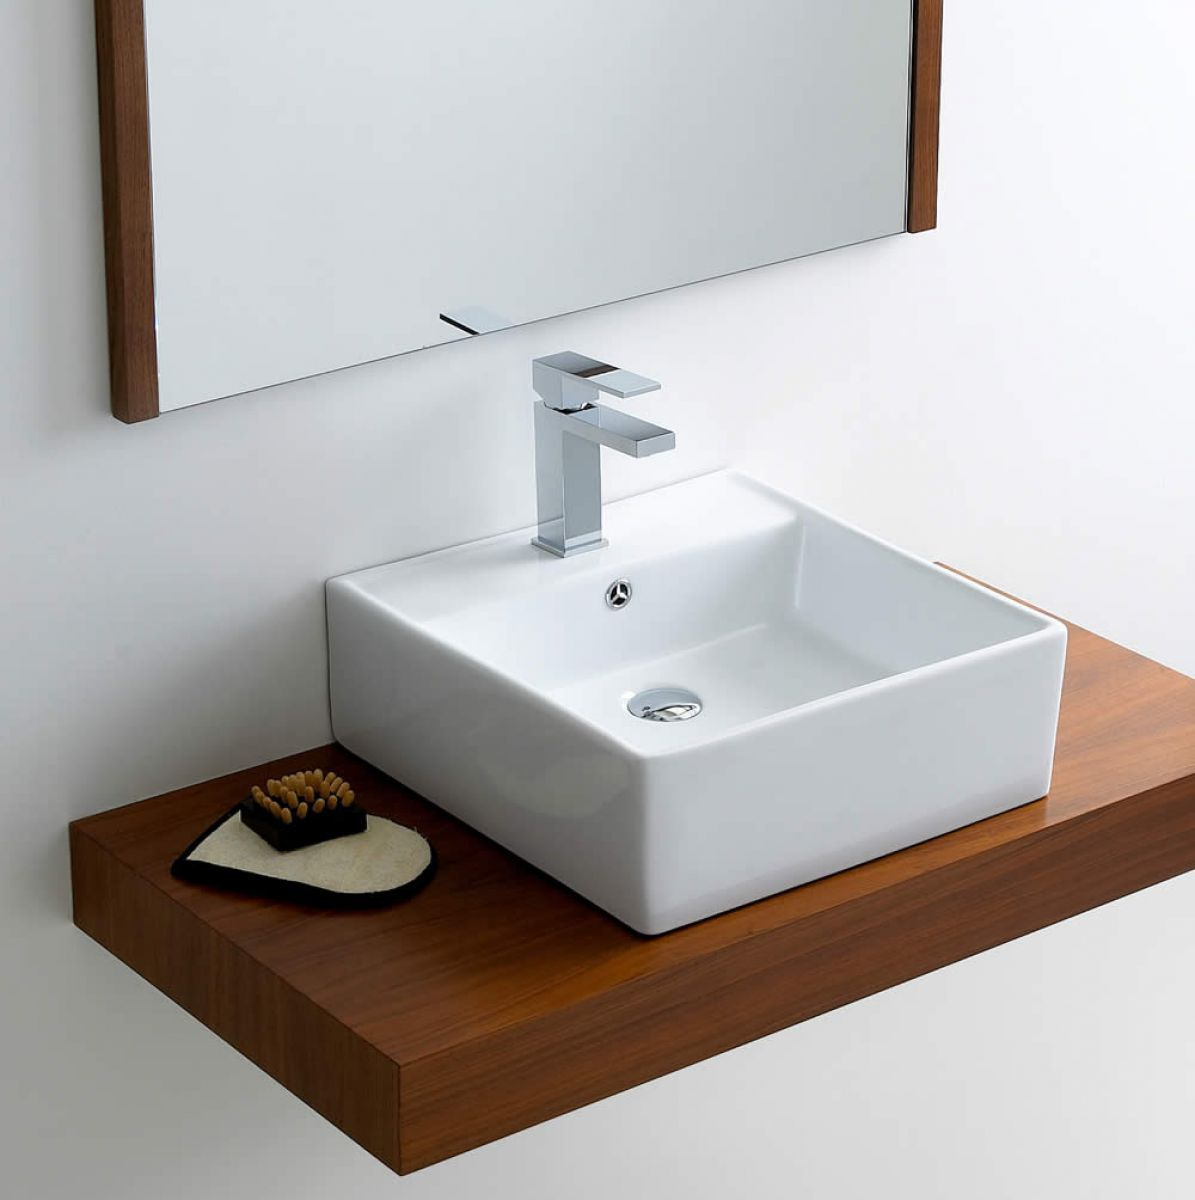 Bathroom Designs Pinterest Phoenix Full Depth Countertop Washbasin Vb008 Uk Bathrooms